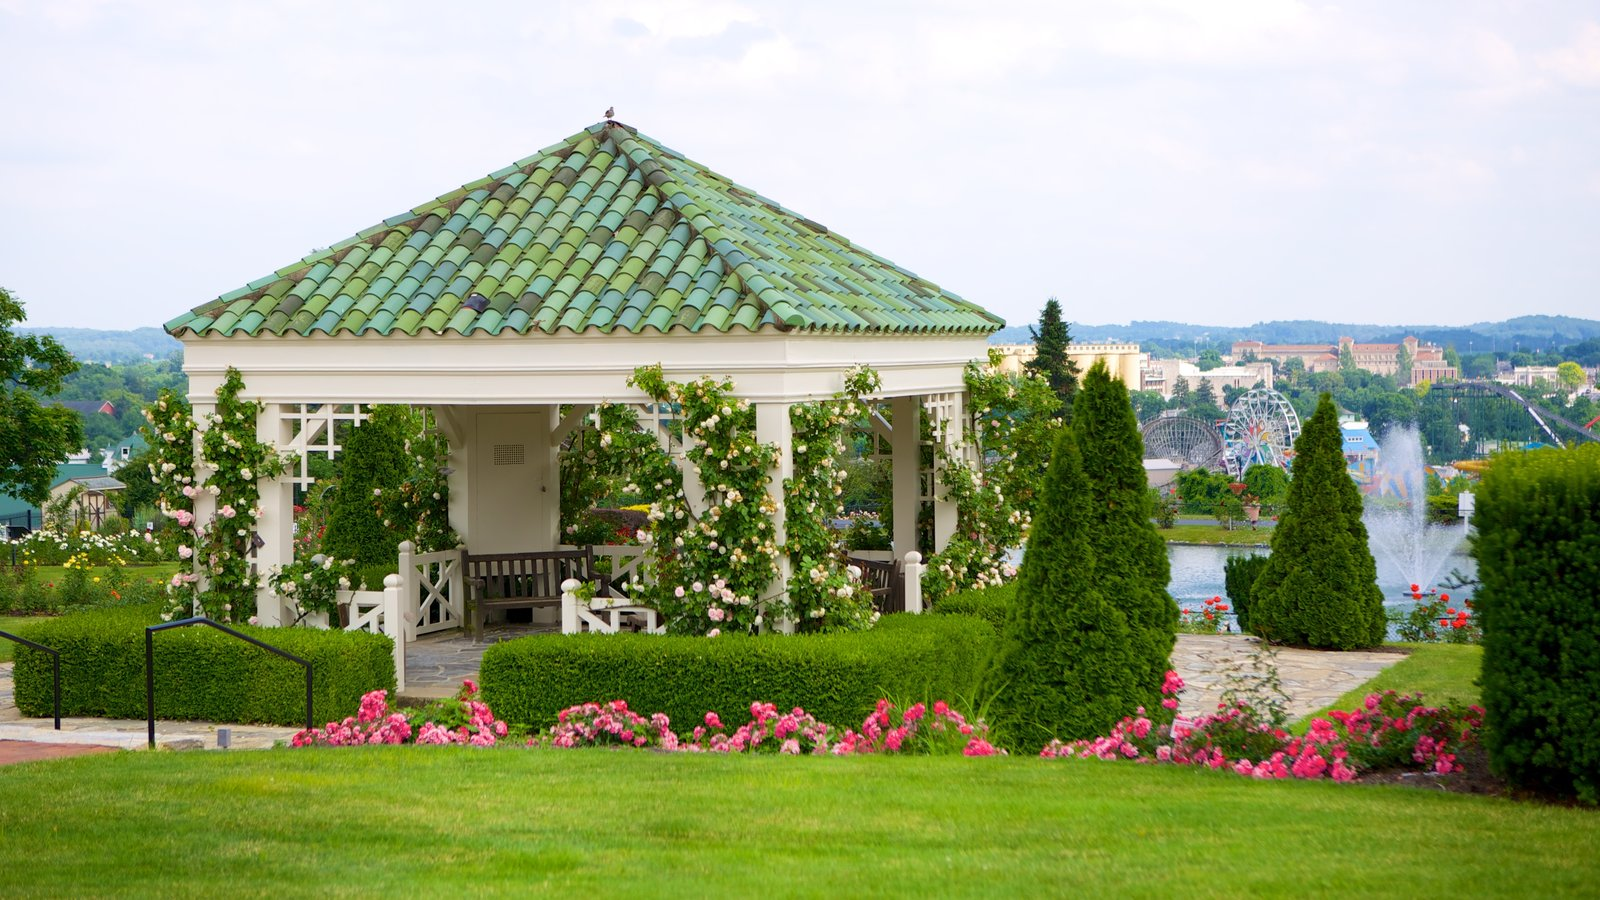 Gardens & Parks Pictures: View Images of Central Pennsylvania